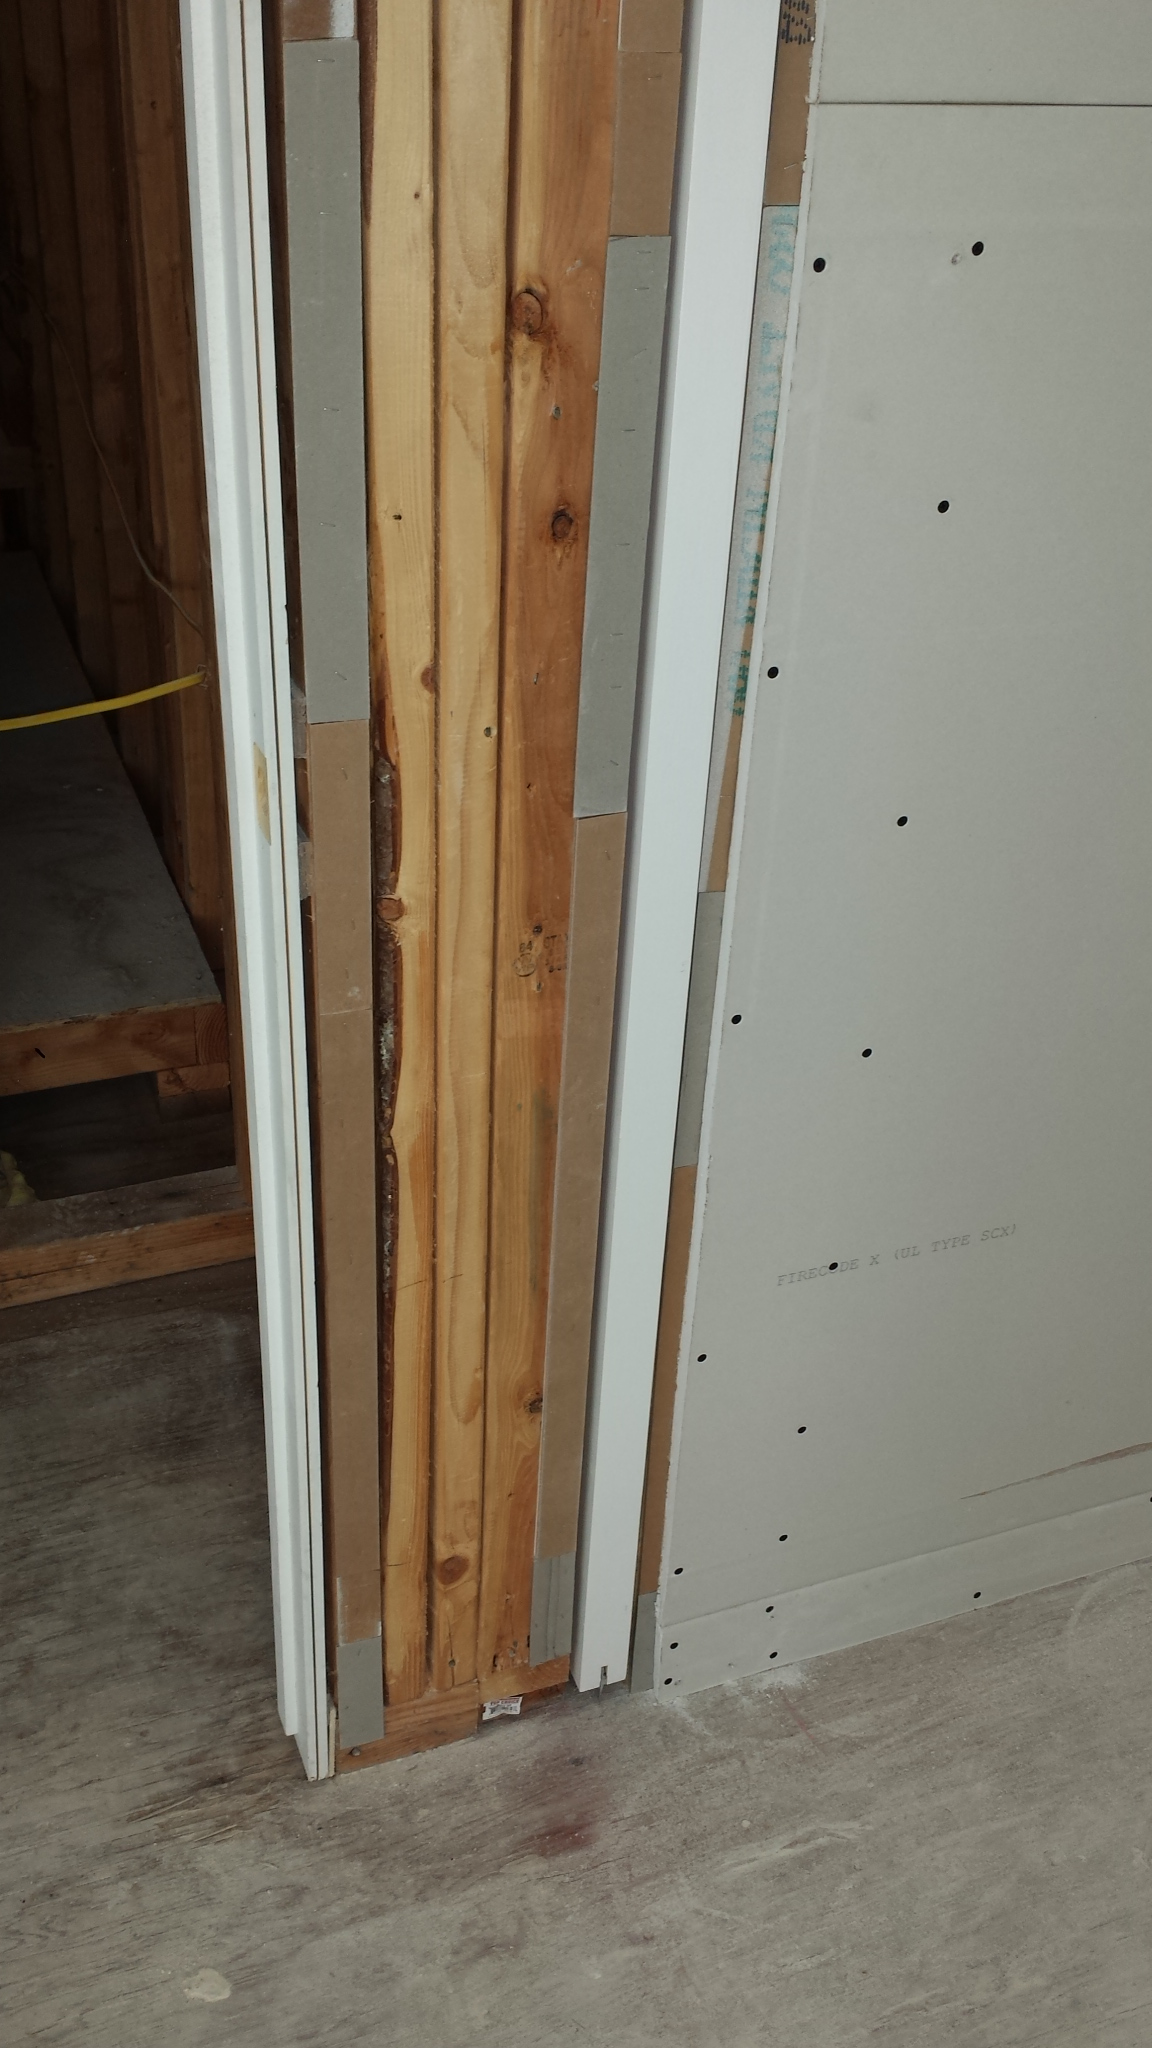 After the door is hung, the drywallers begin to close up the opening.